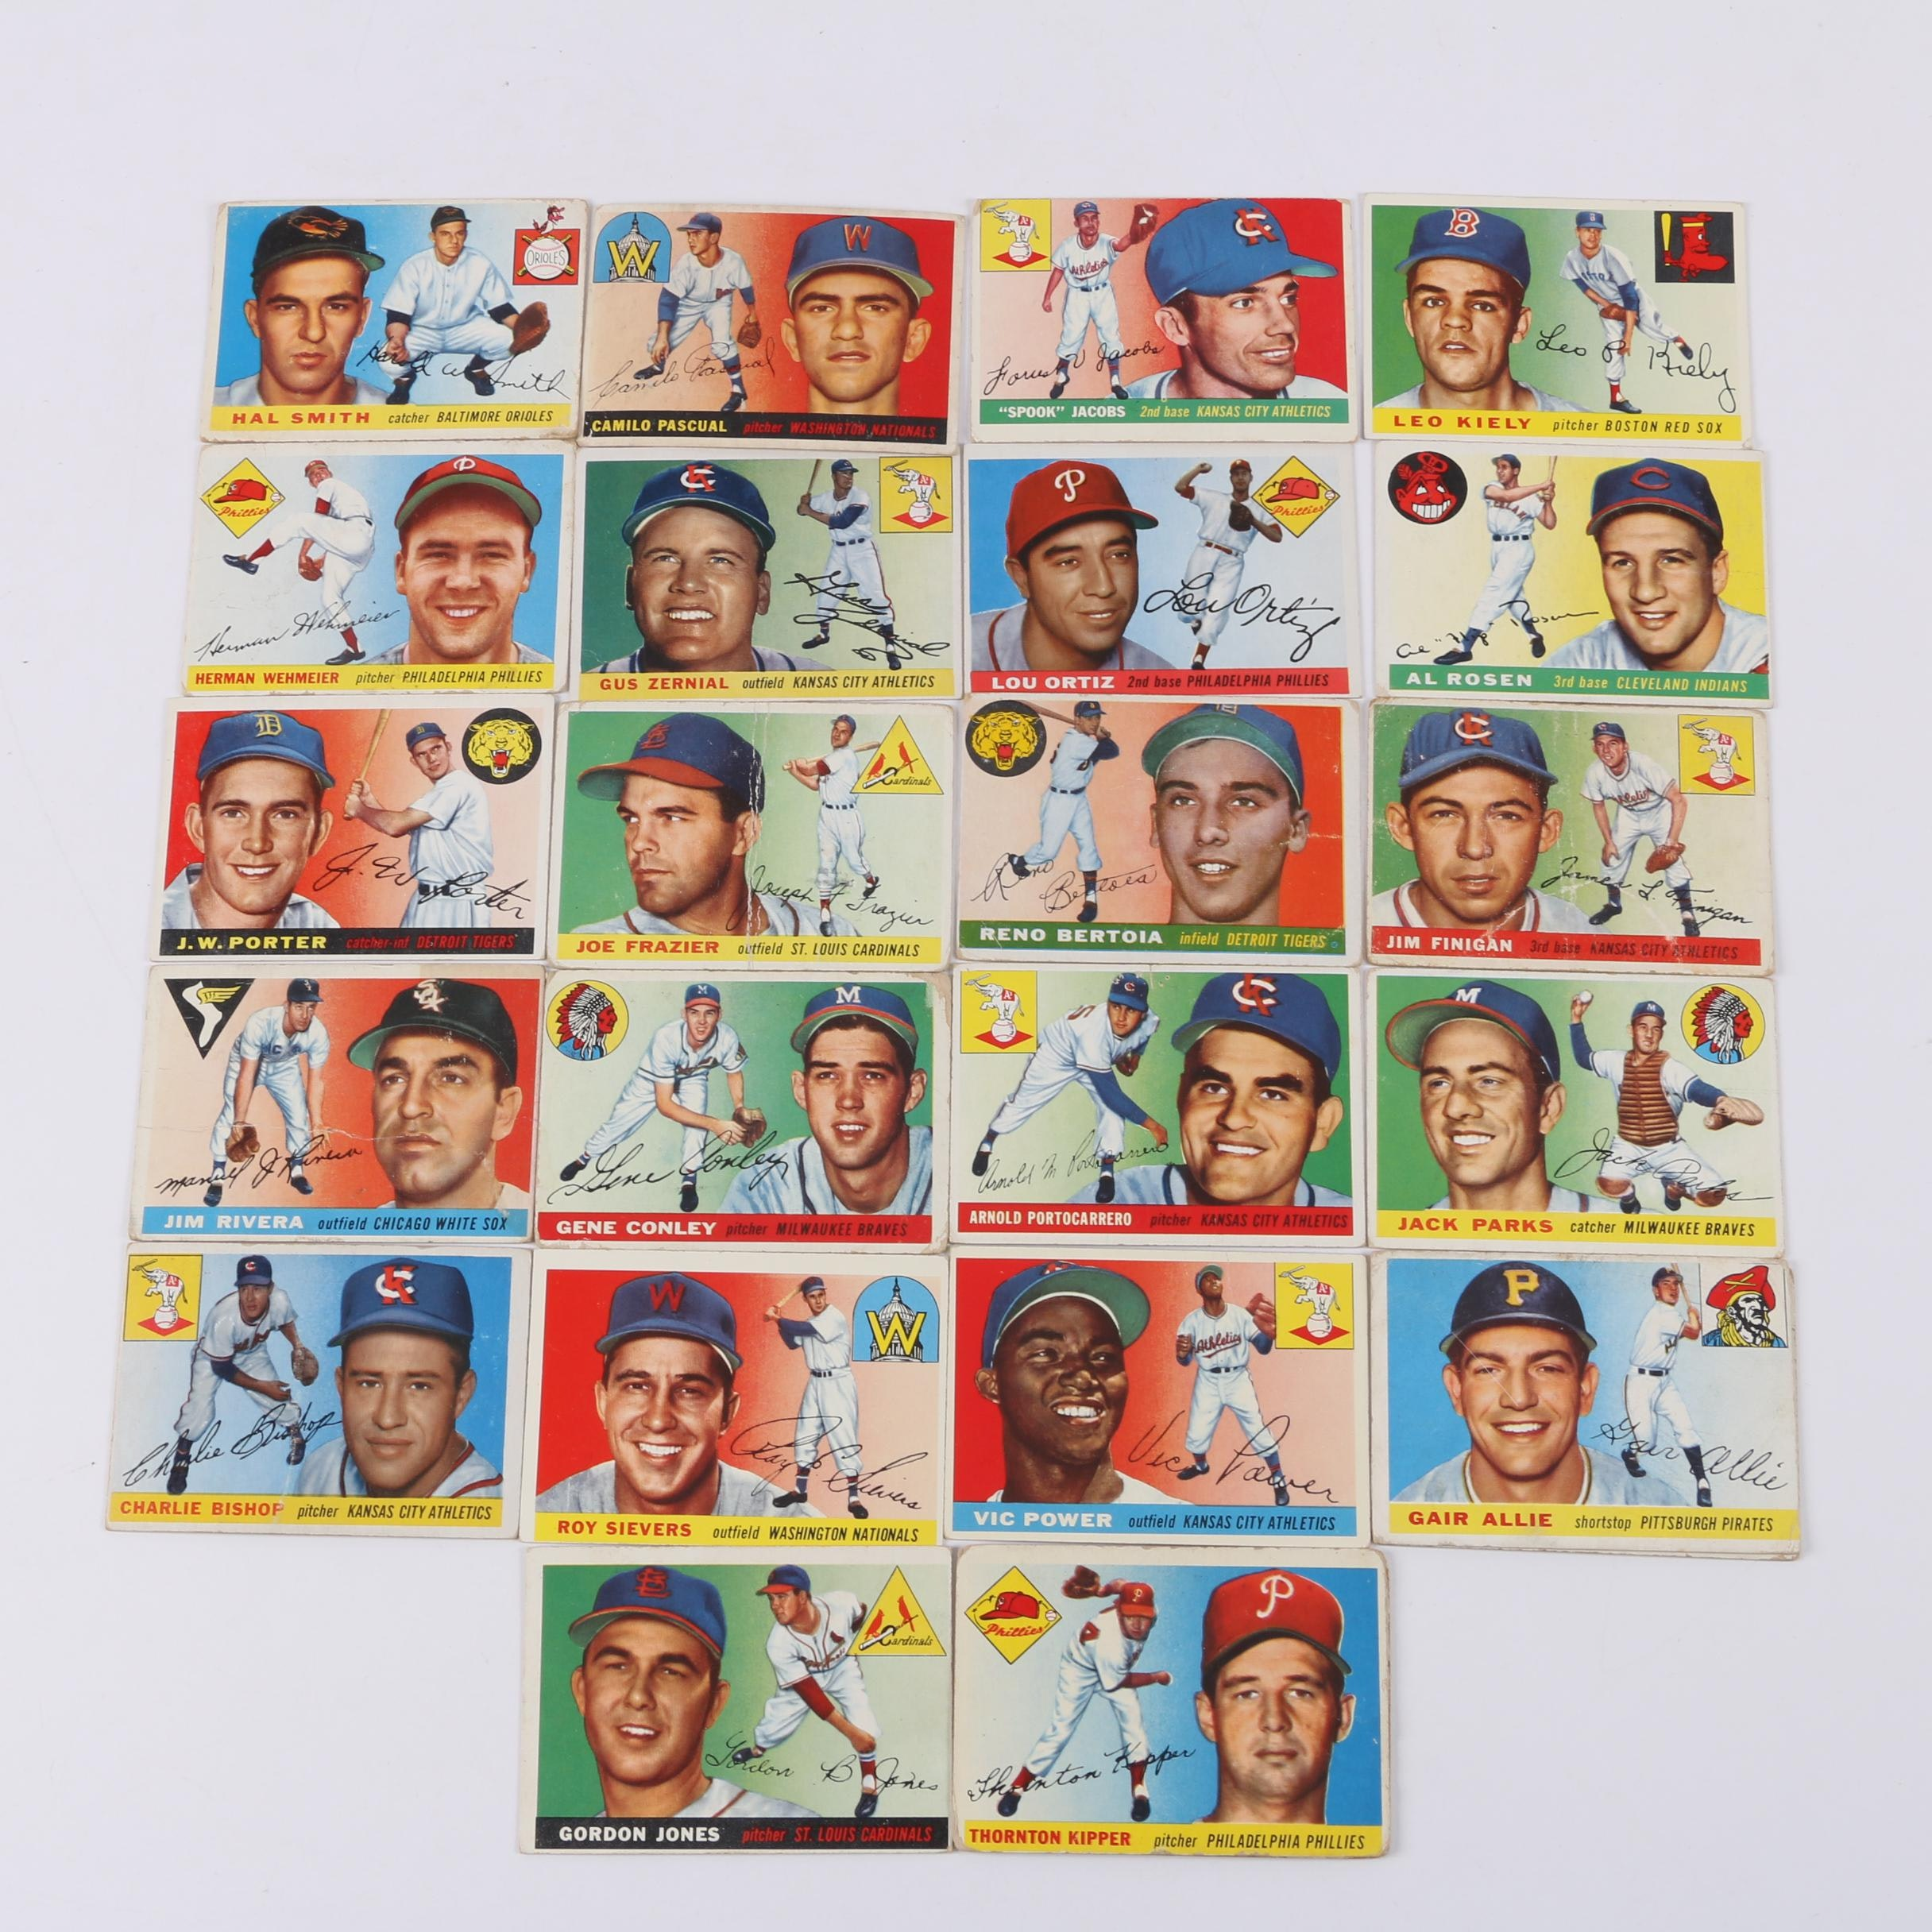 1950's Topps Baseball Cards Including Joe Frazier and Vic Power